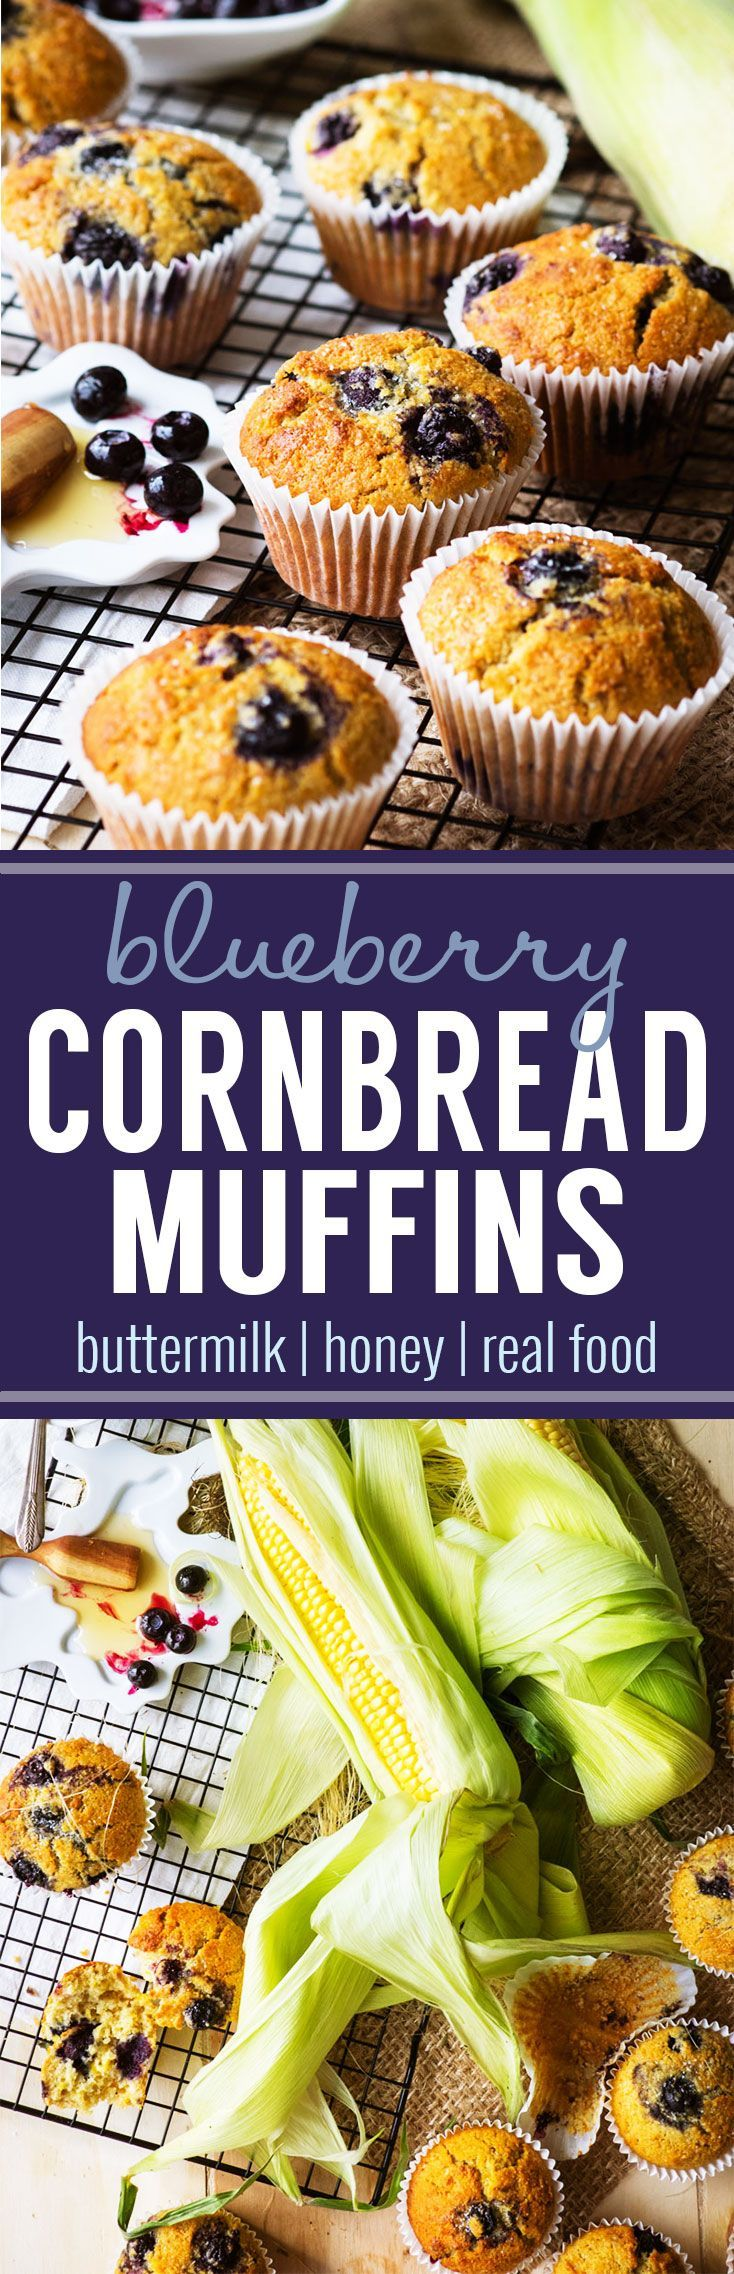 Blueberry Cornbread Muffins - made with corn, buttermilk and honey. This is a delicious fall breakfast! Make these ahead of time so you have a grab 'n go breakfast for the weekday. #cornbread #muffins #blueberrymuffins #breakfast